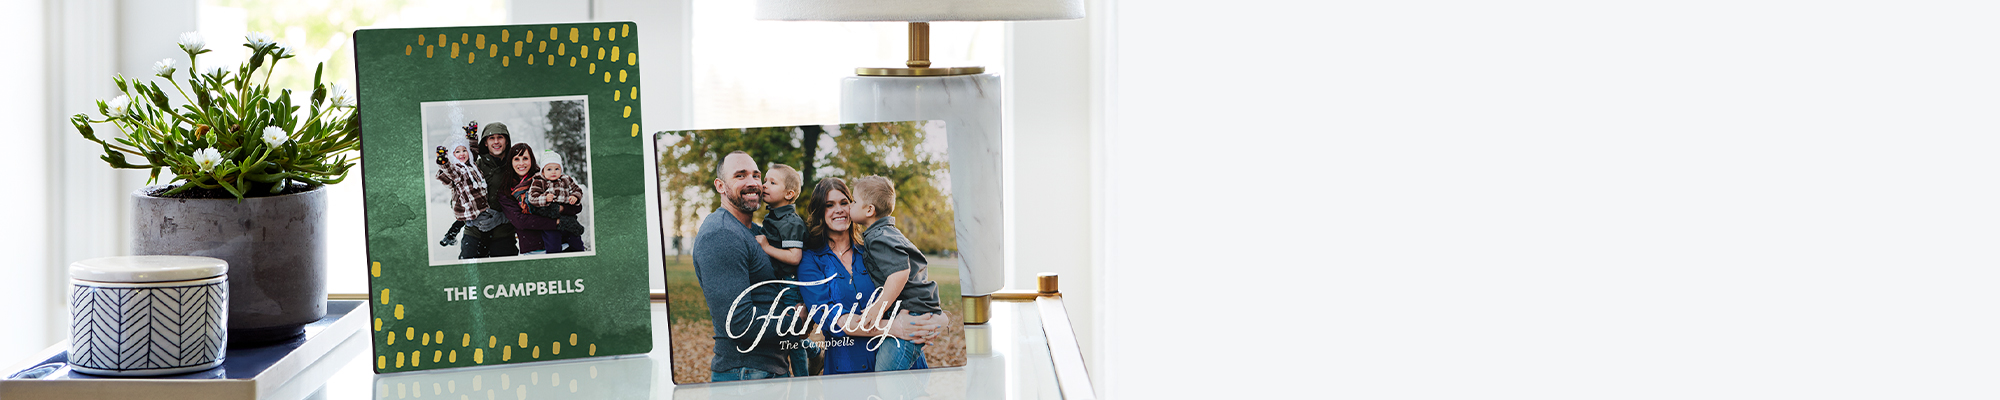 Home Décor Fill your home with a cozy collection of your favorite moments, places, and faces.